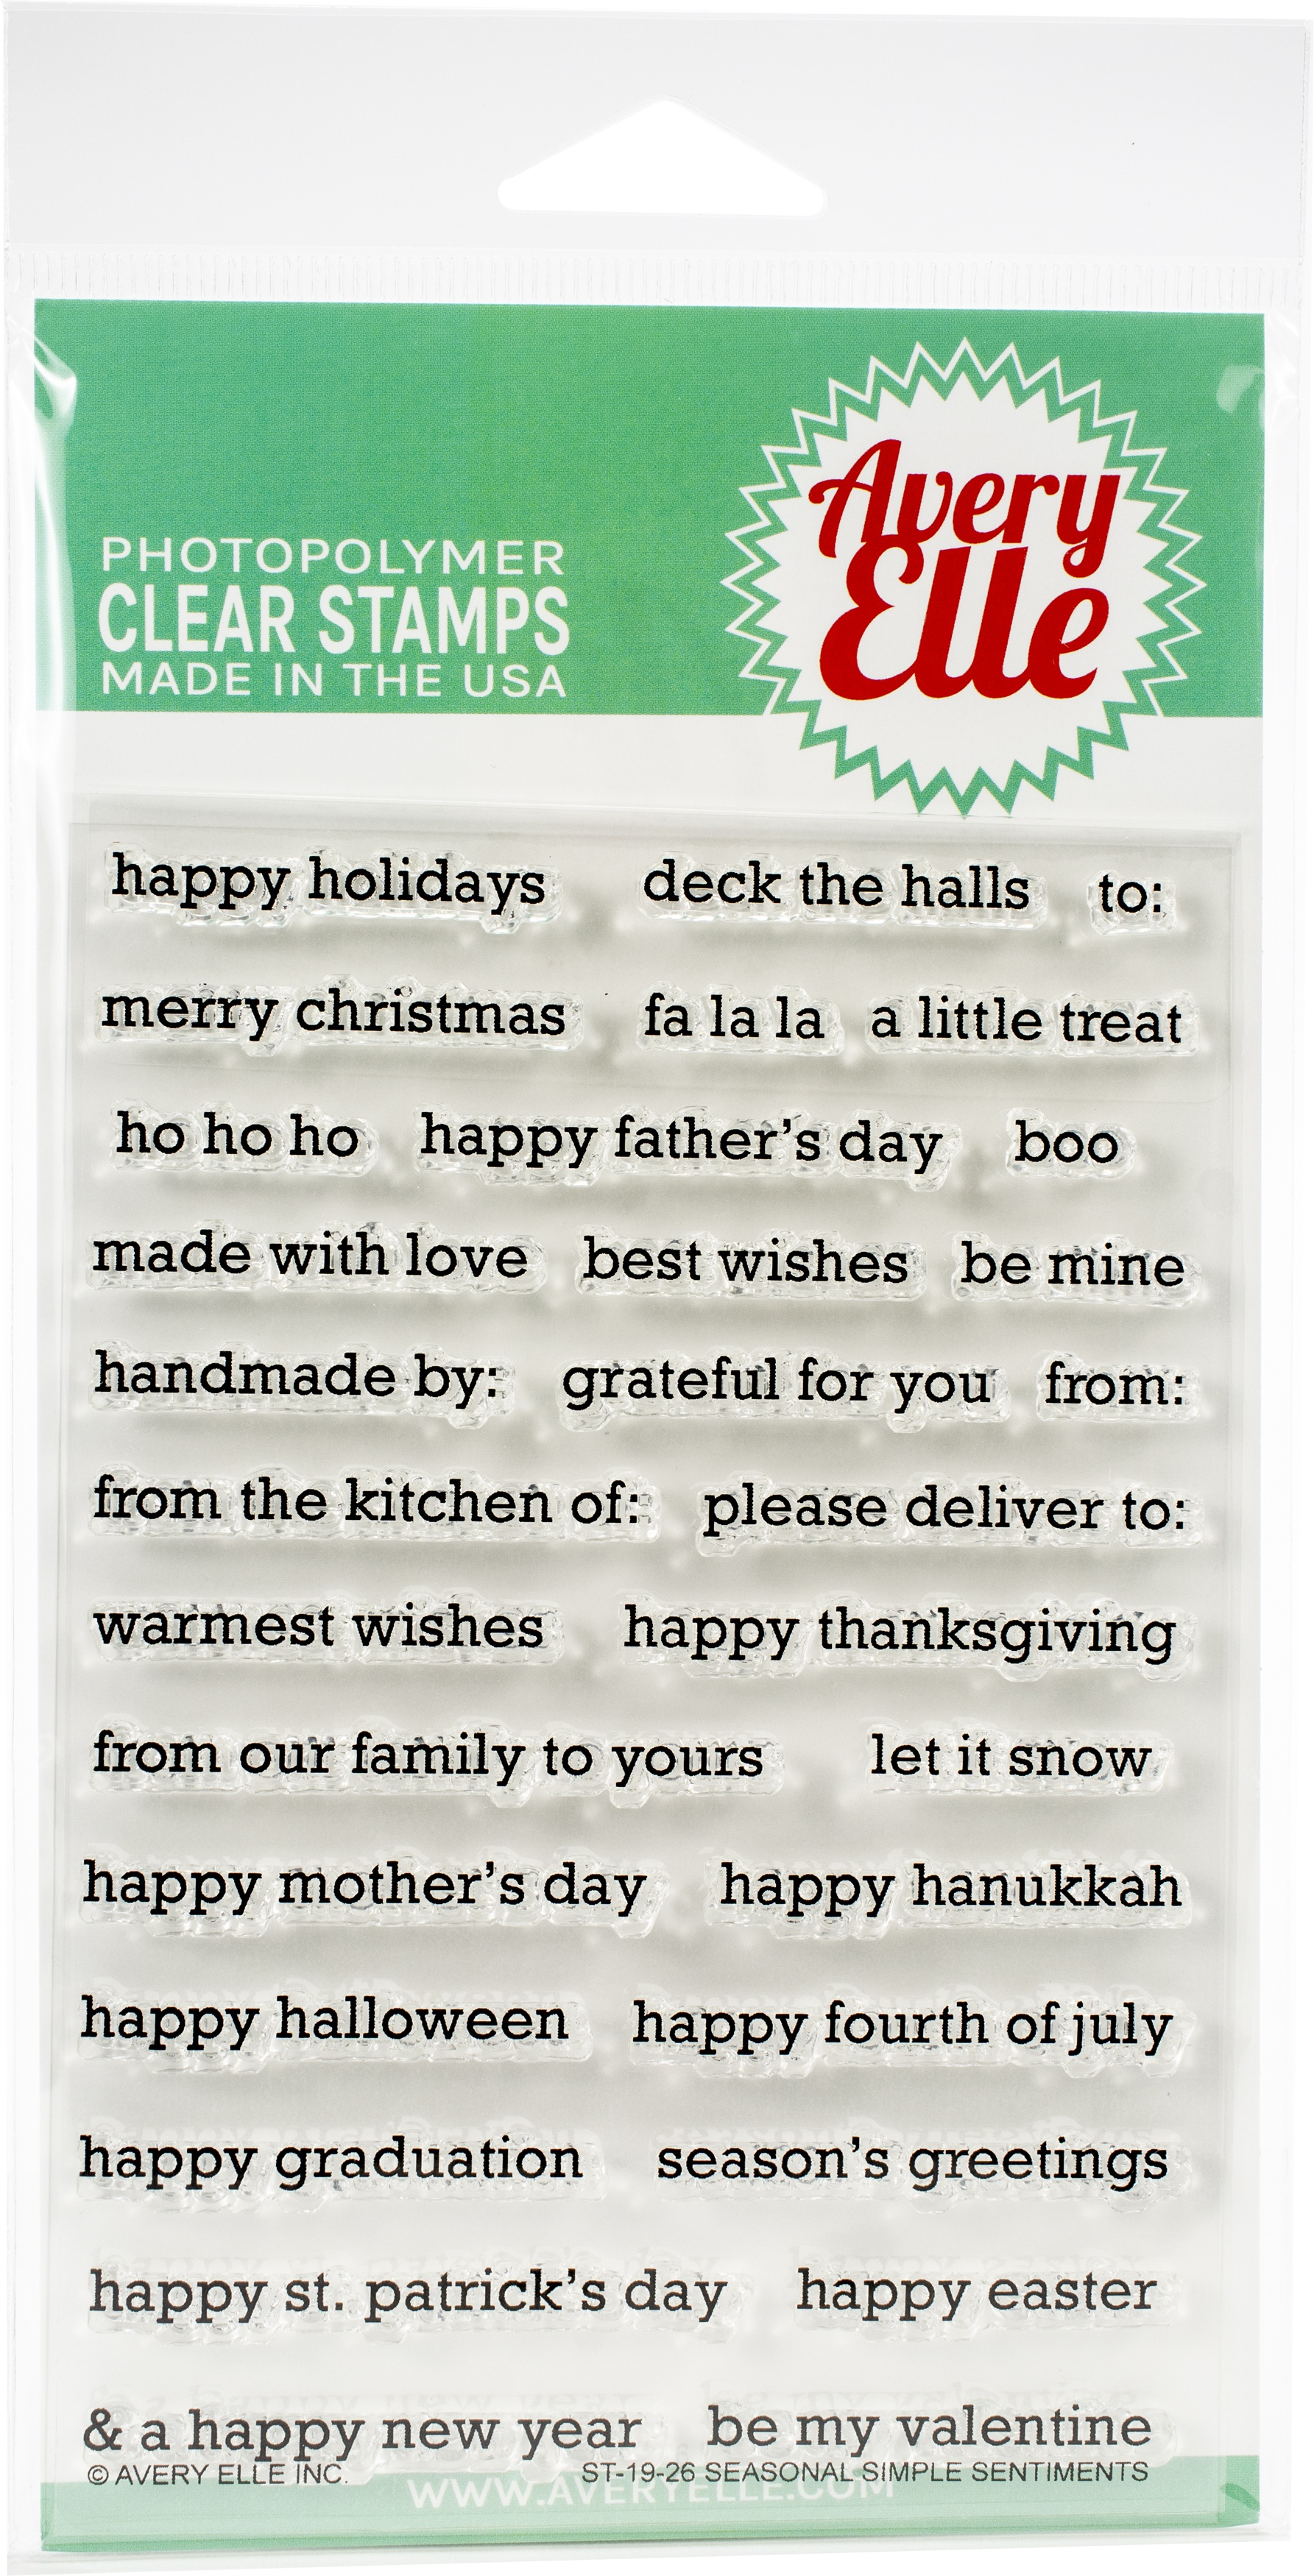 Avery Elle Clear Stamp Set - Seasonal Simple Sentiments